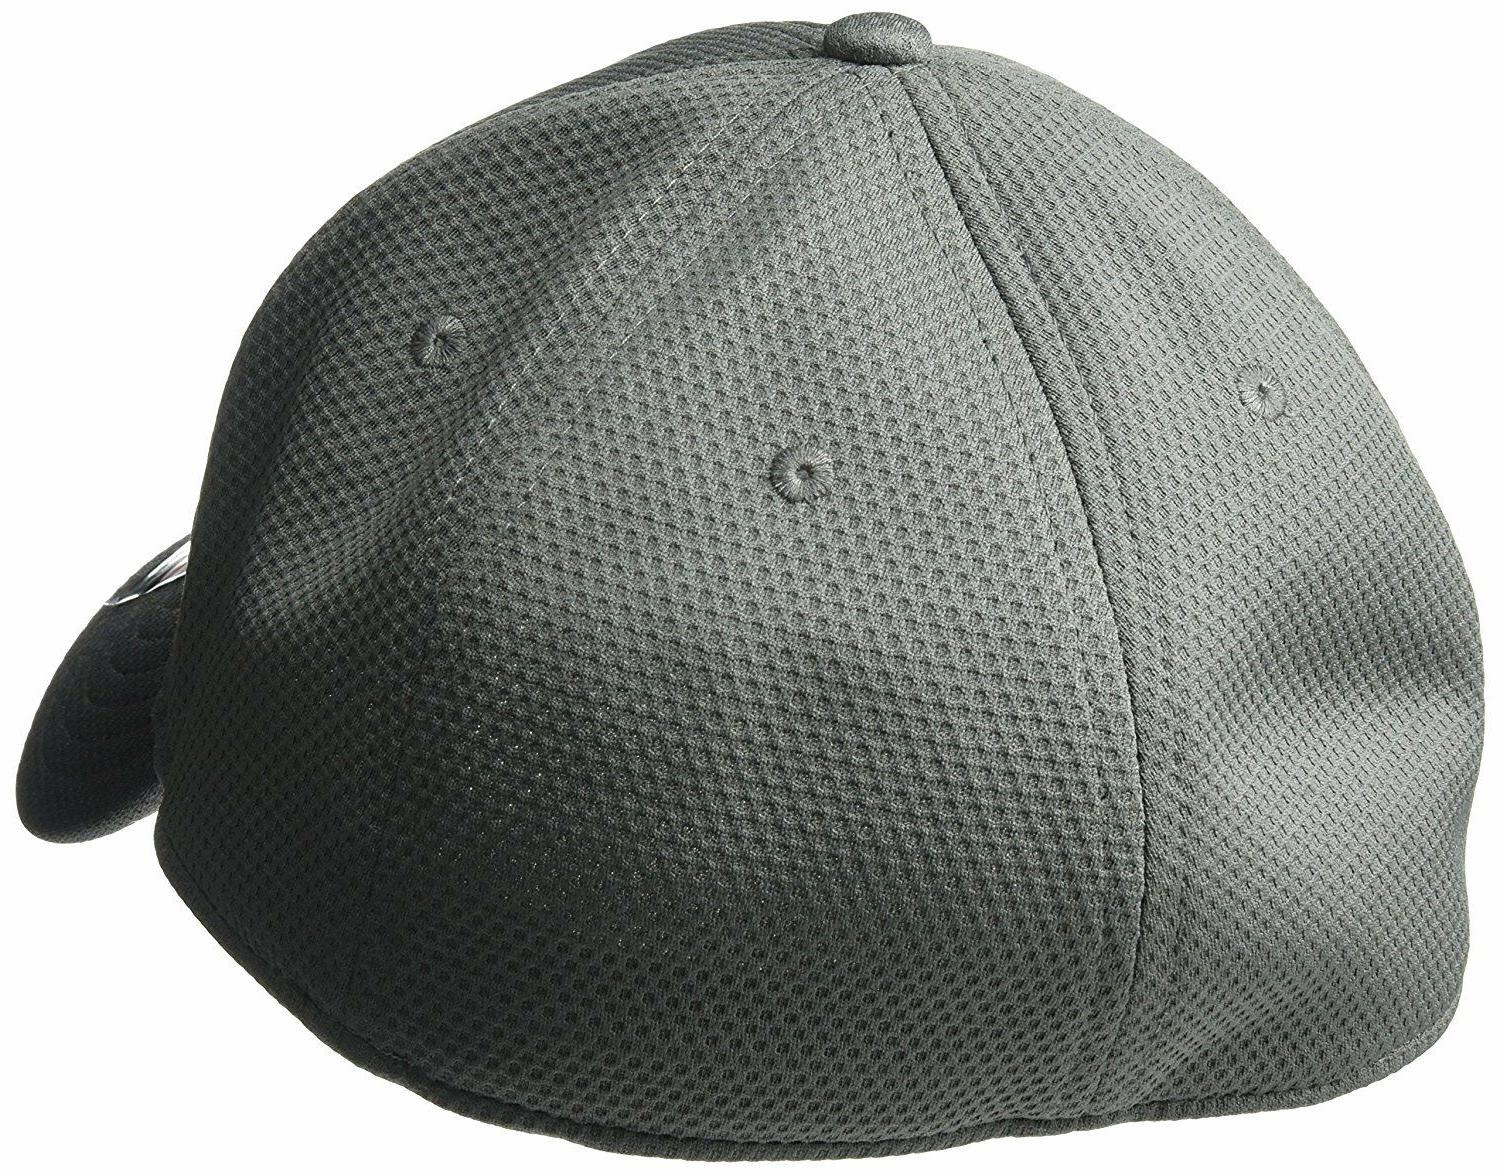 Under Men's Brim Stretch